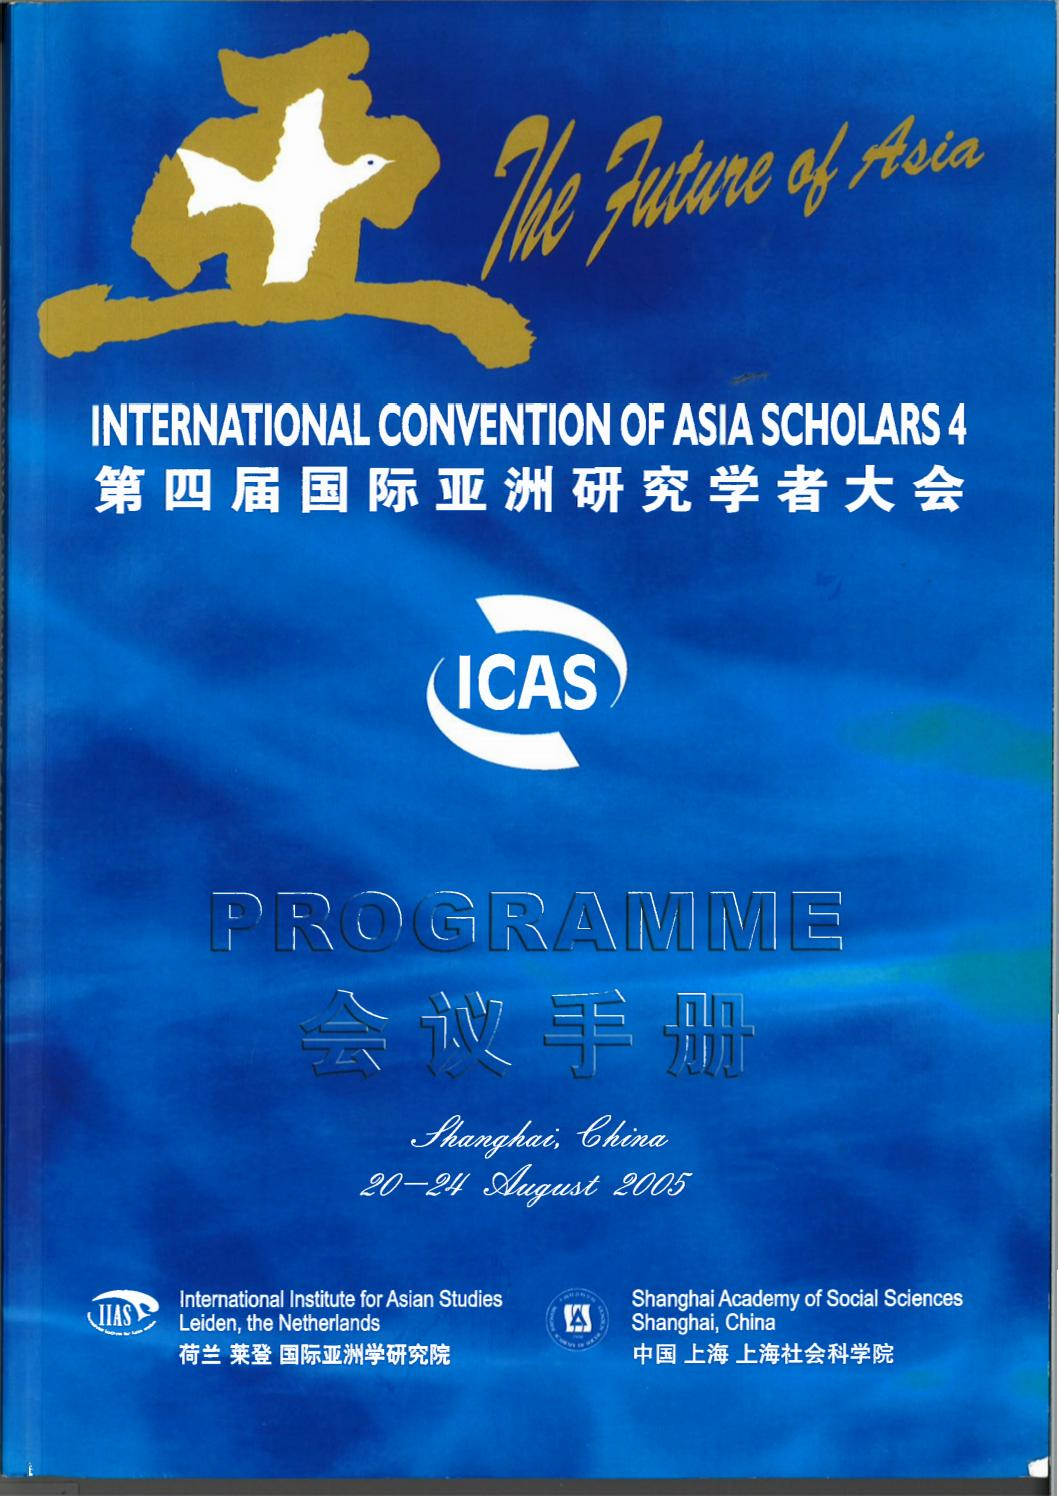 ICAS 4 by International Institute for Asian Studies - issuu